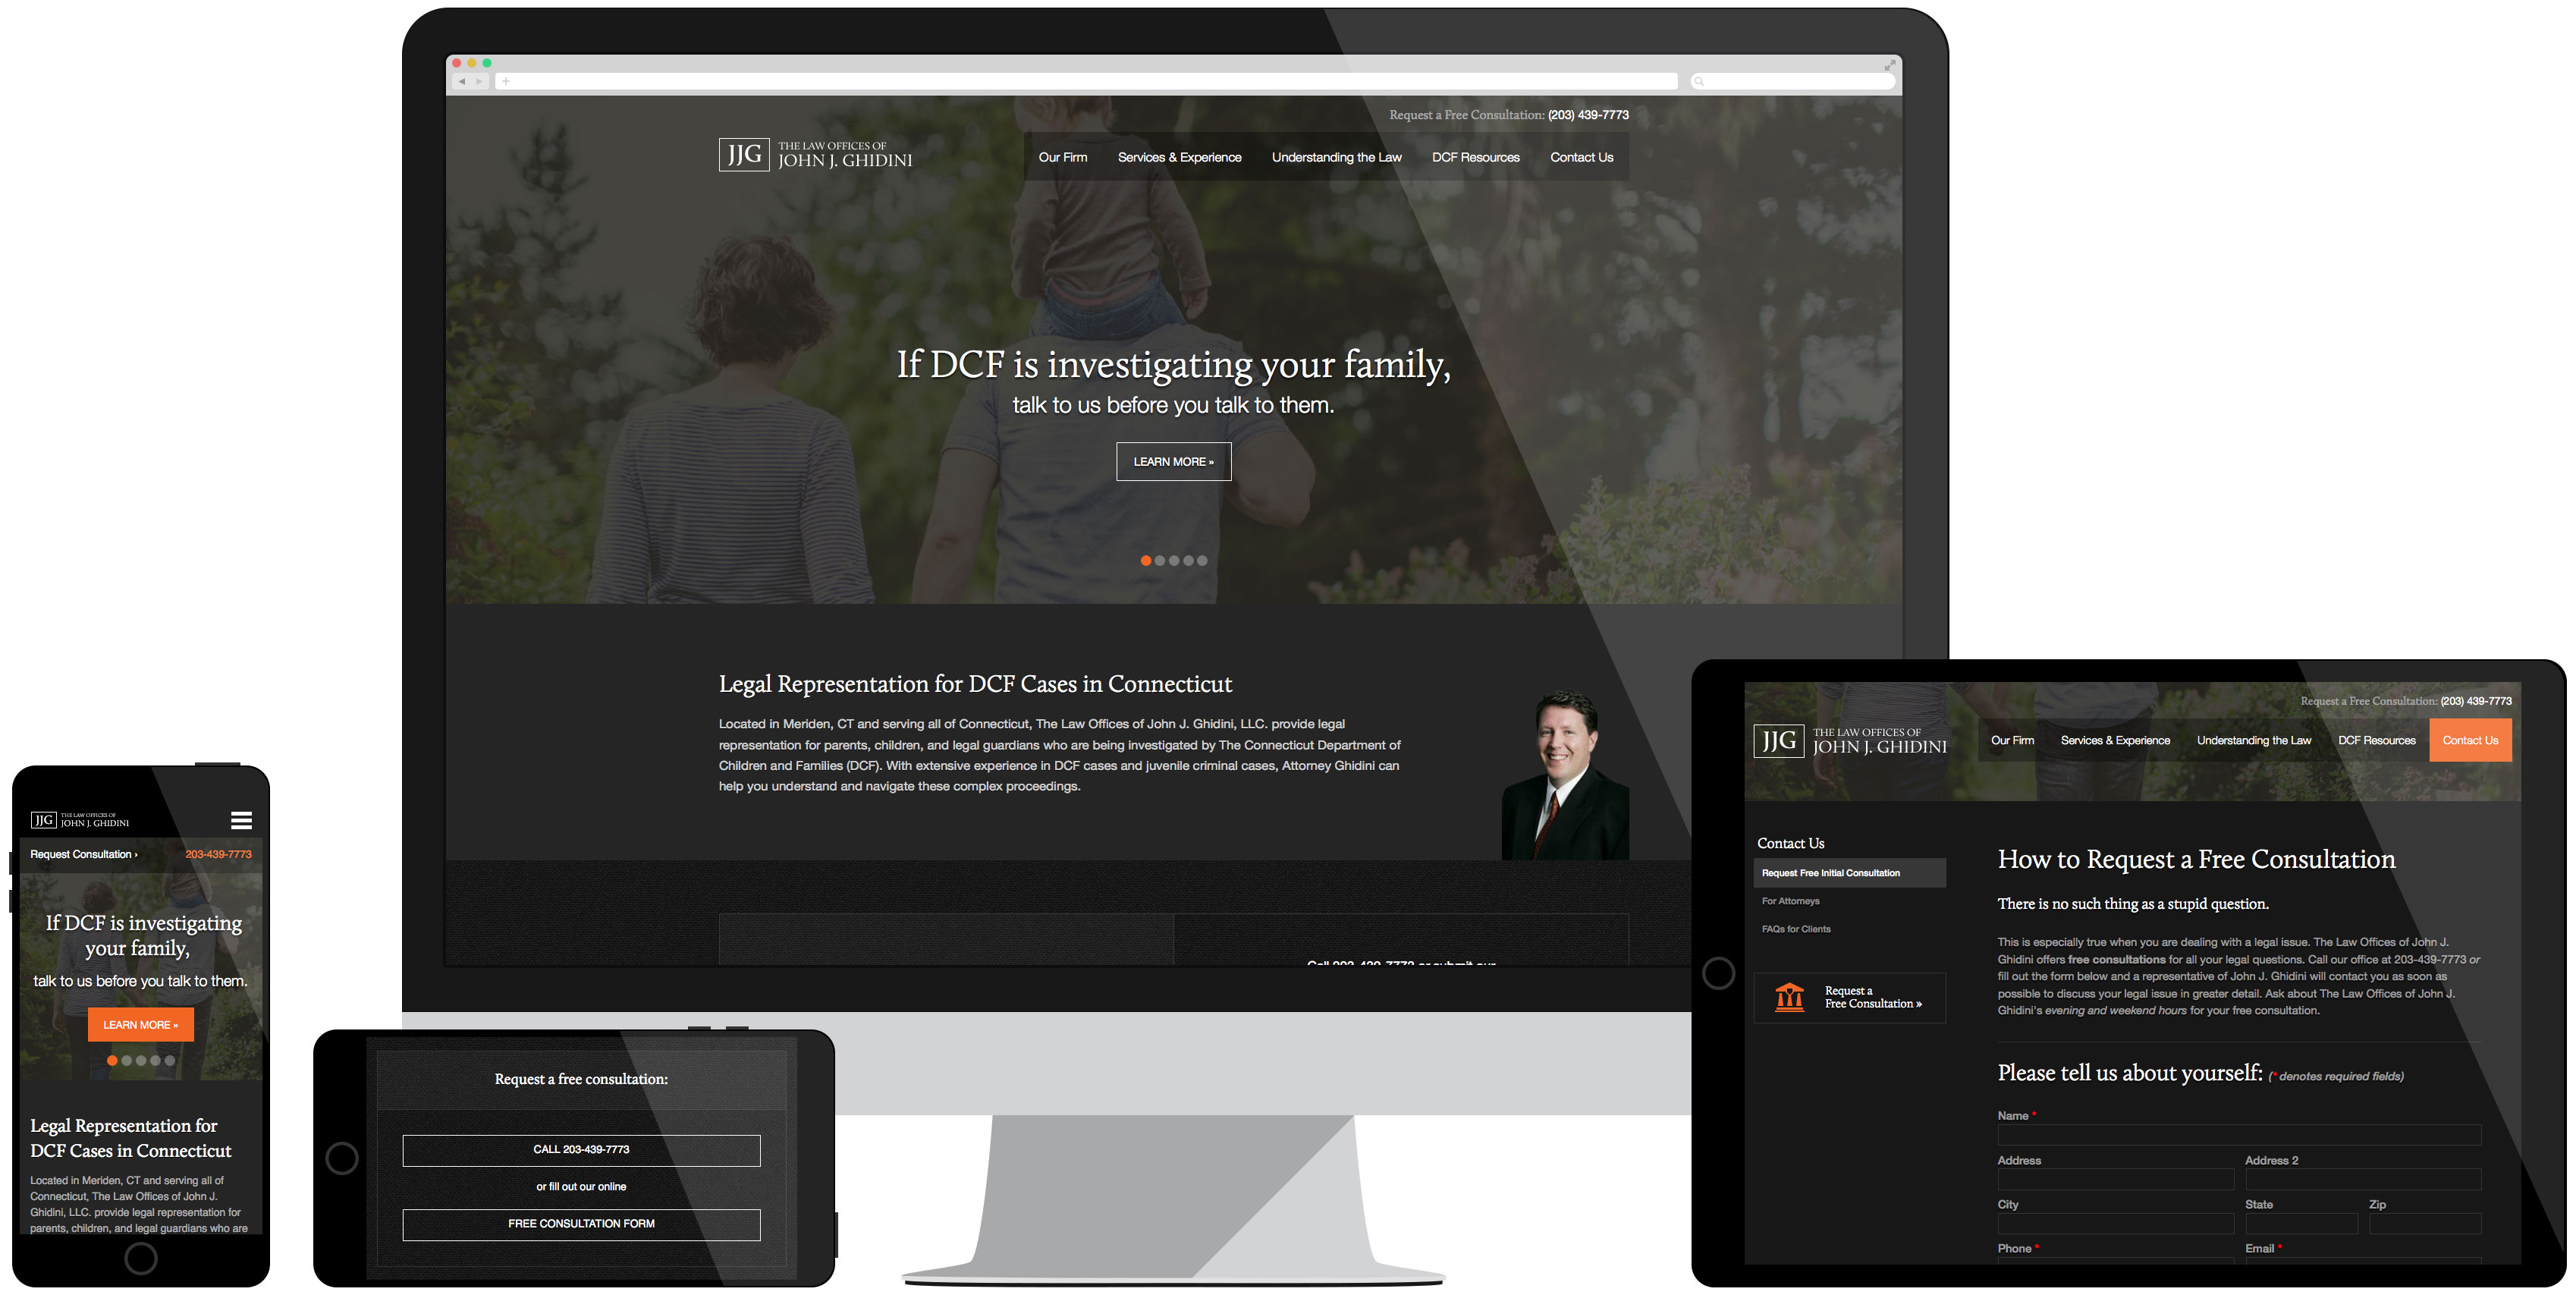 John Ghidini Website Development